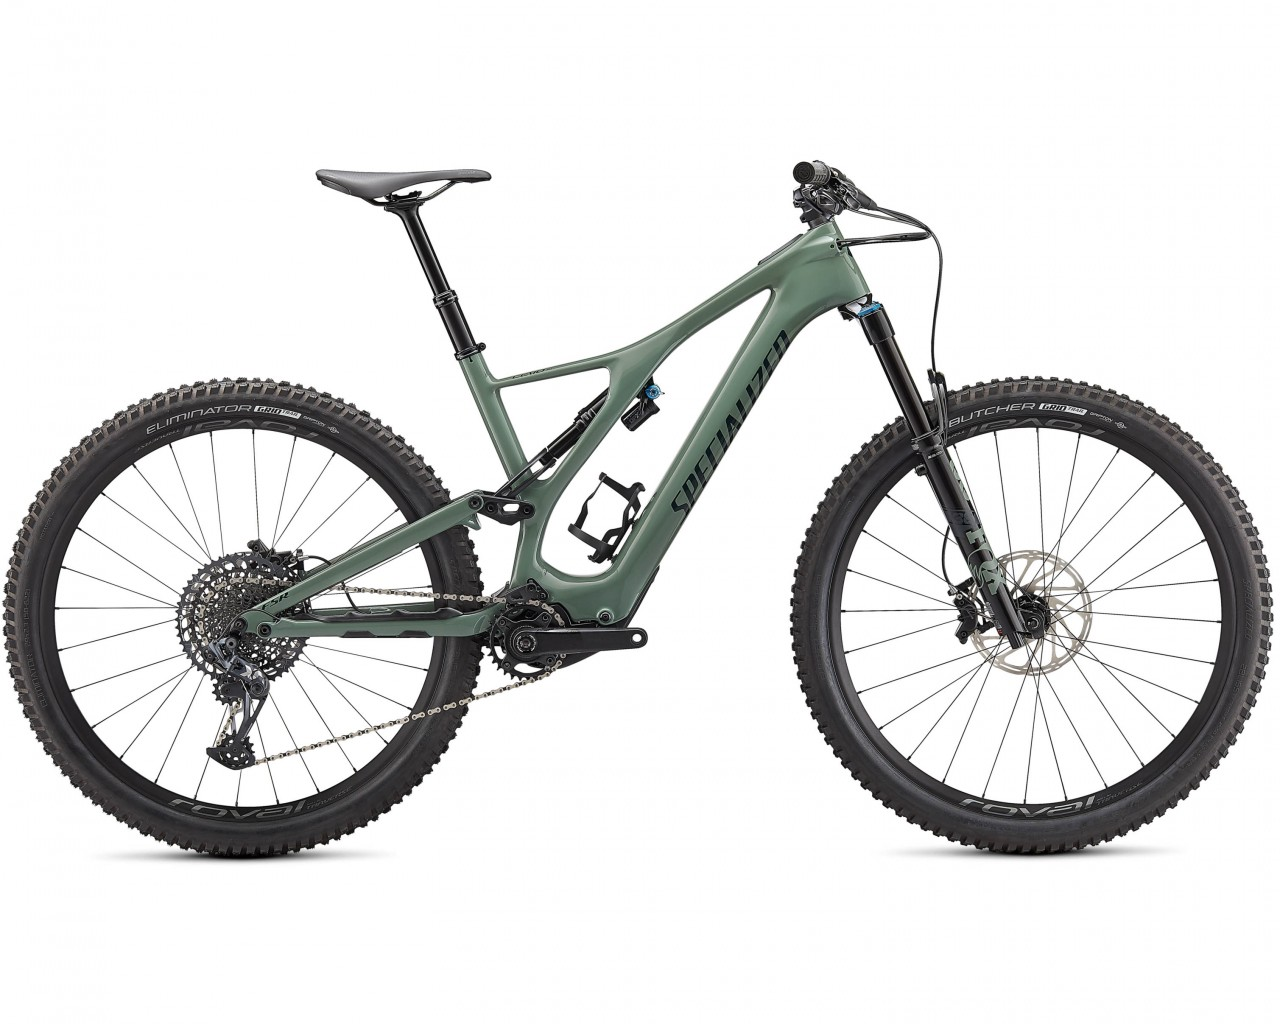 Specialized Levo SL Expert Carbon 29 - Elektro Carbon MTB Fully 2021 | gloss sage-forst green